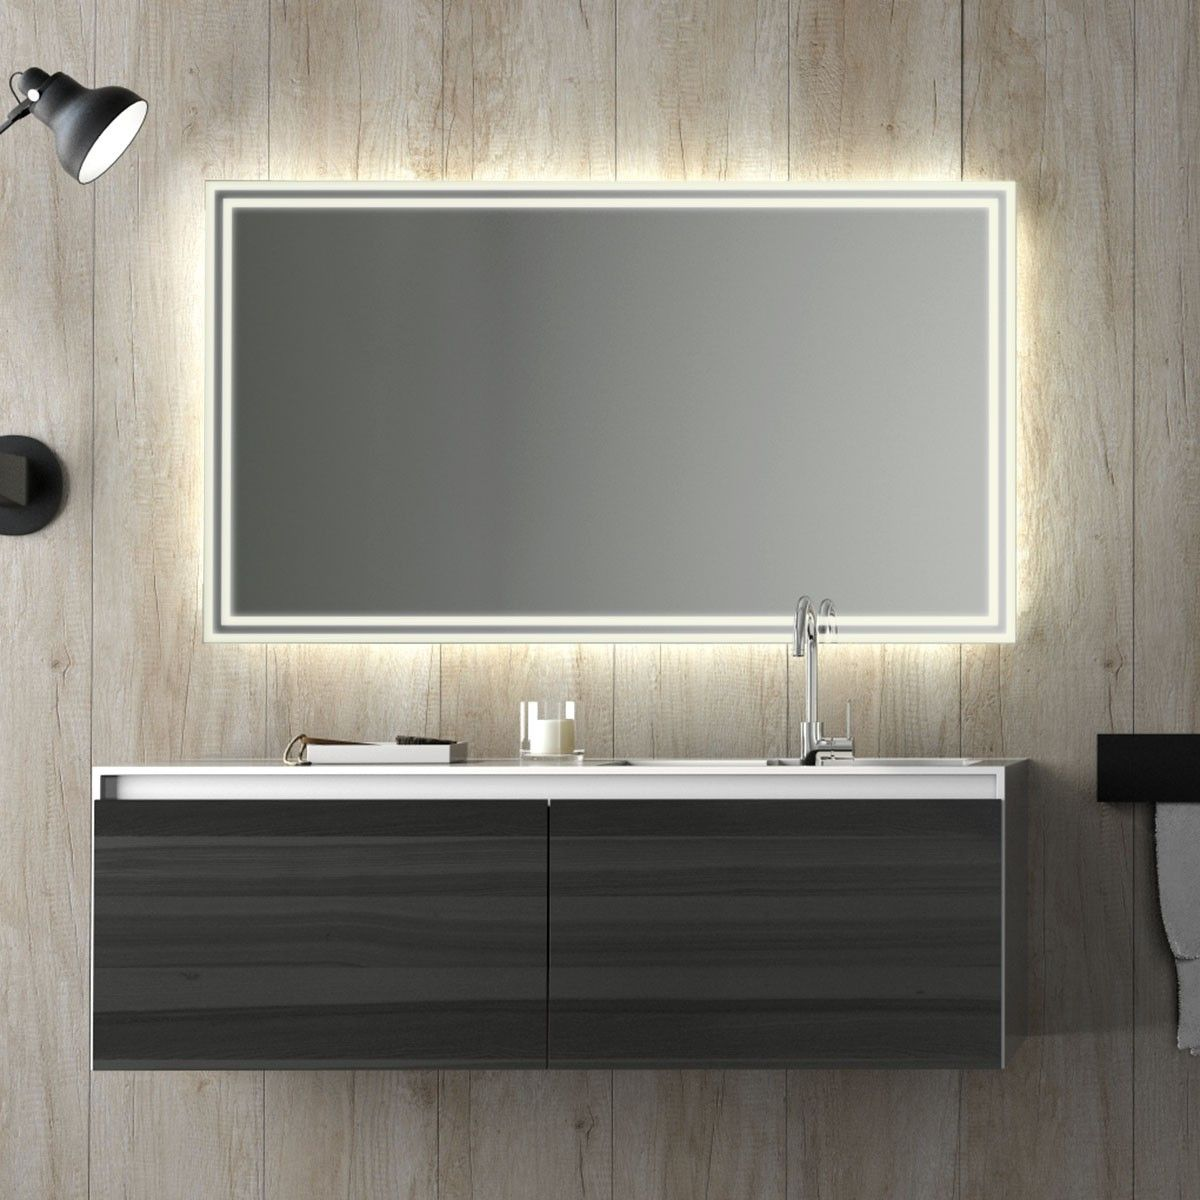 Design Badspiegel Mit Led Beleuchtung Wandspiegel Badezimmerspiegel Nach Maß Lichtspiegel Milsan Baeder Bathroom Lighting Mirror Und Bathroom